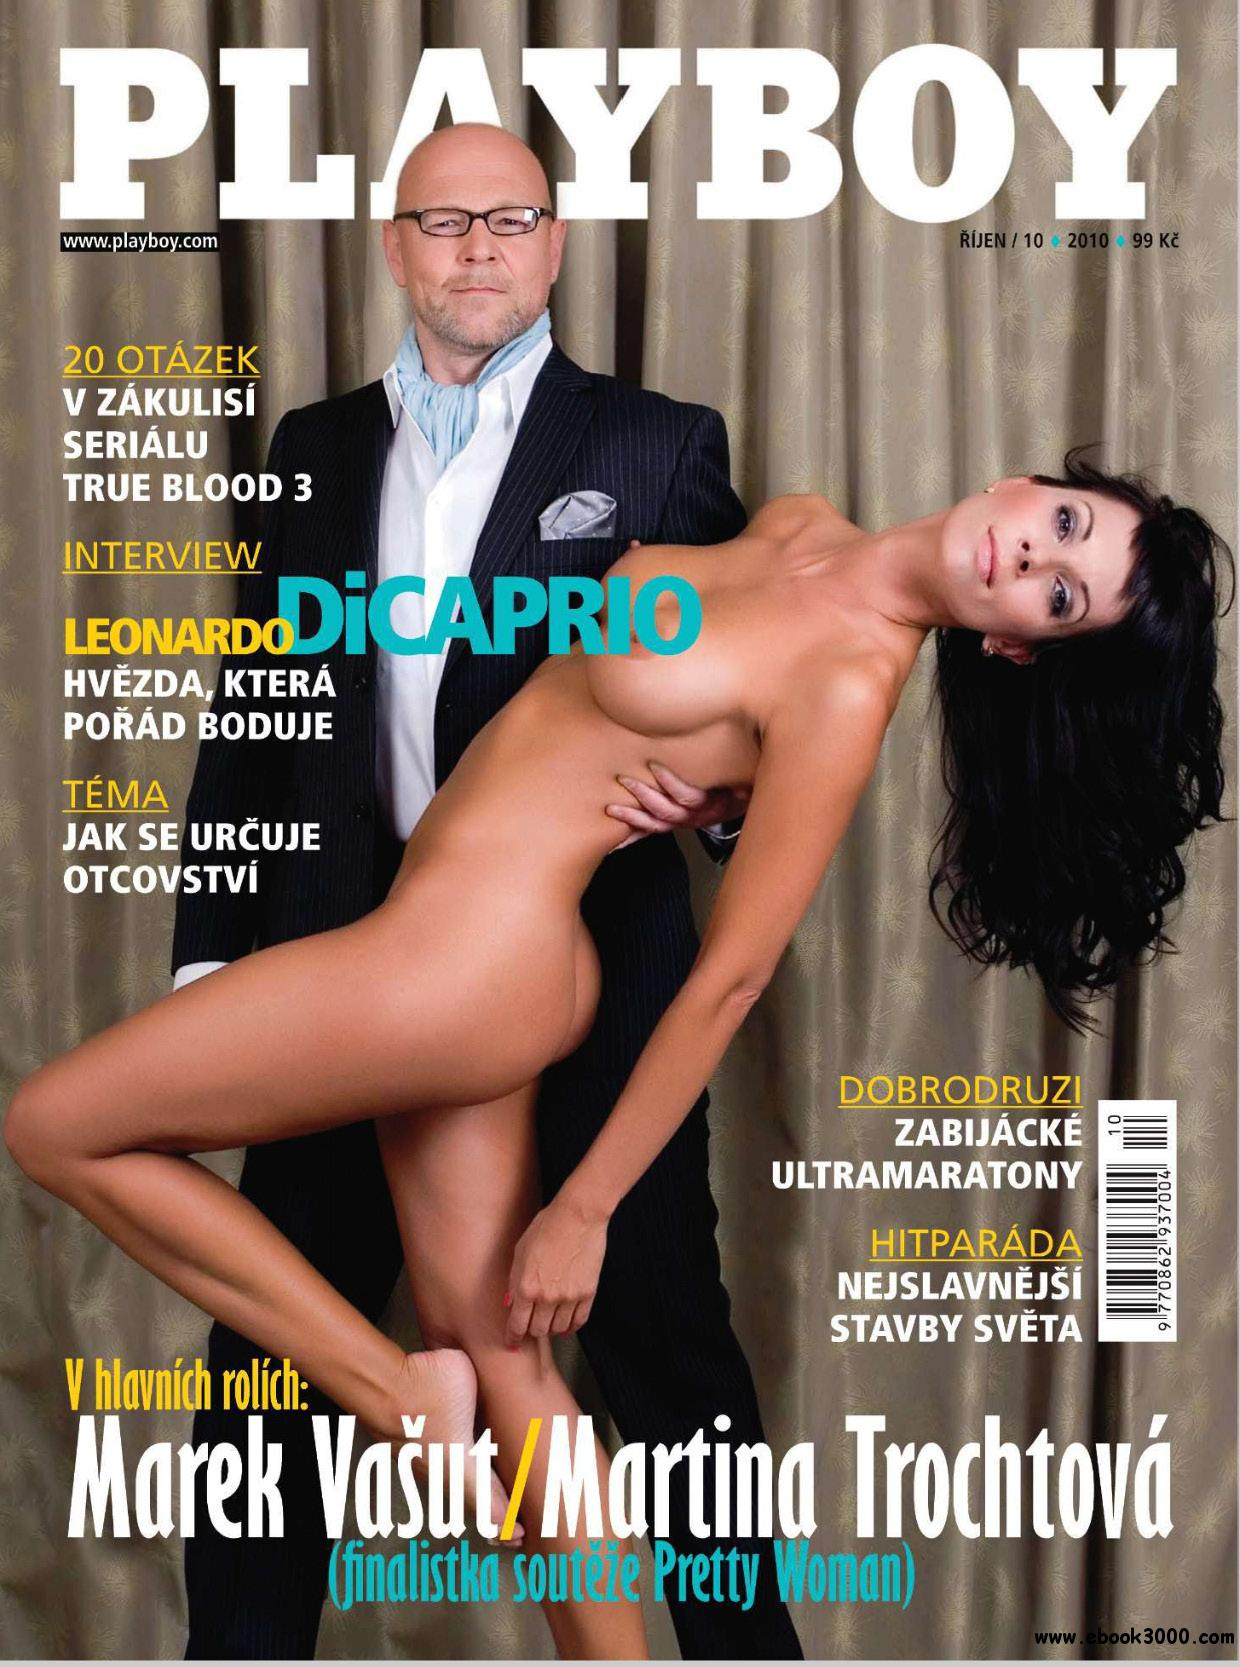 Playboy Czech - October 2010 download dree